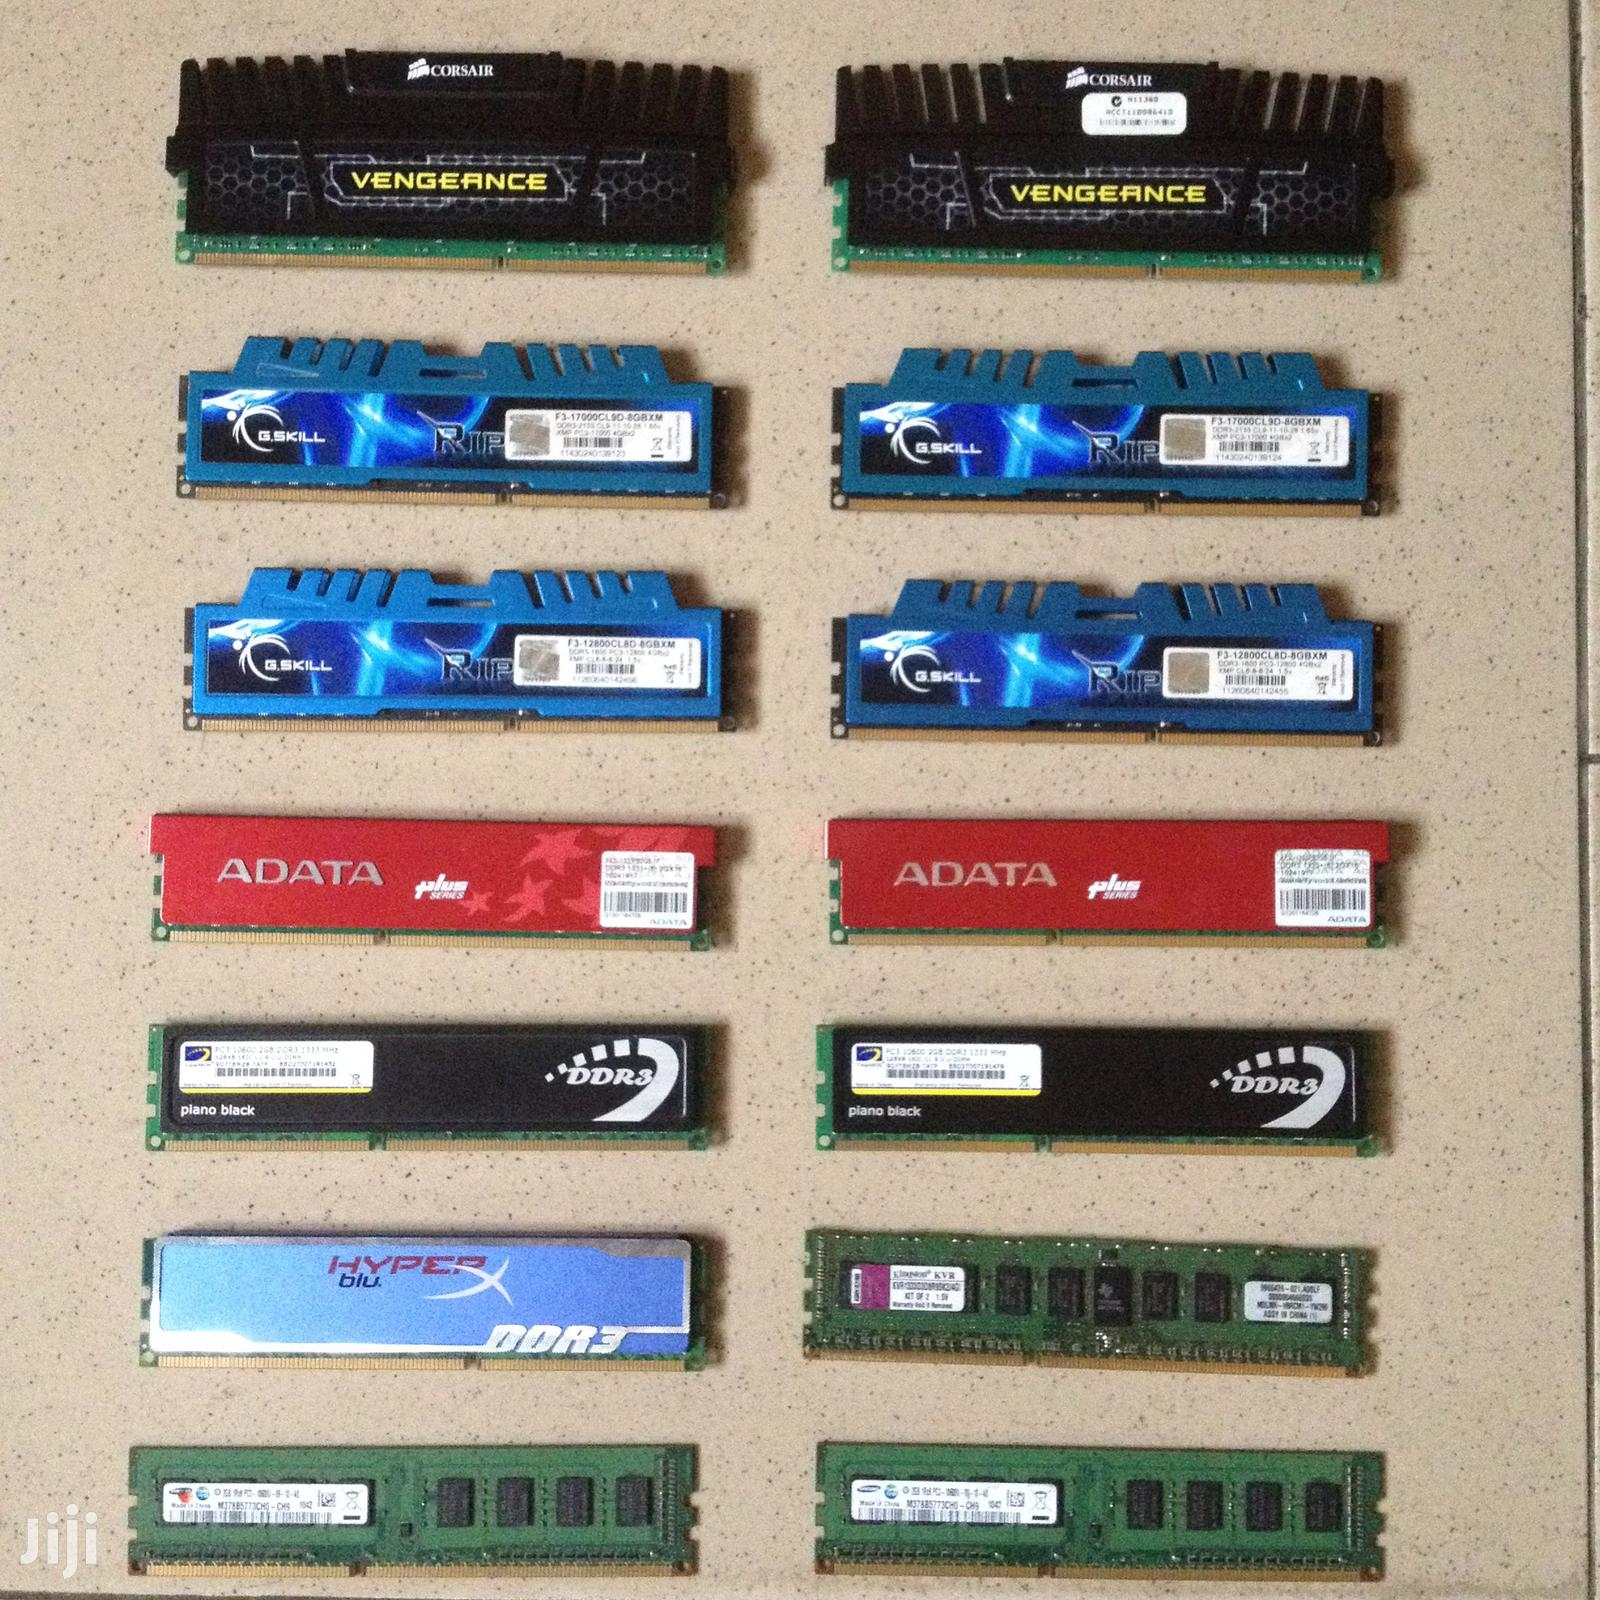 Ddr3 Ram / Memory for Desktop | Computer Hardware for sale in Adabraka, Greater Accra, Ghana